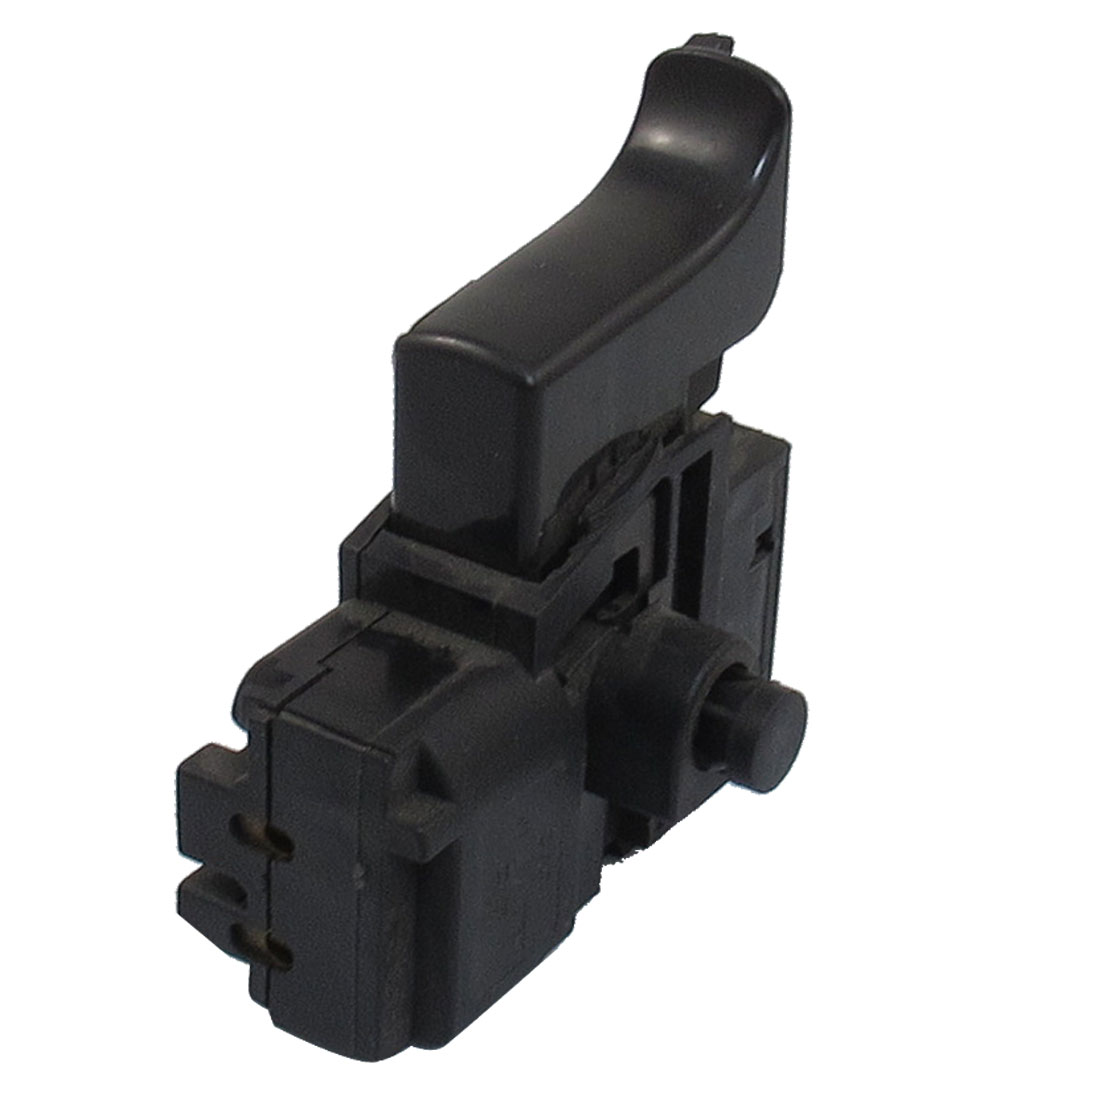 Lock On Power Control Trigger Switch for Bosch 10 RE Impact Drill